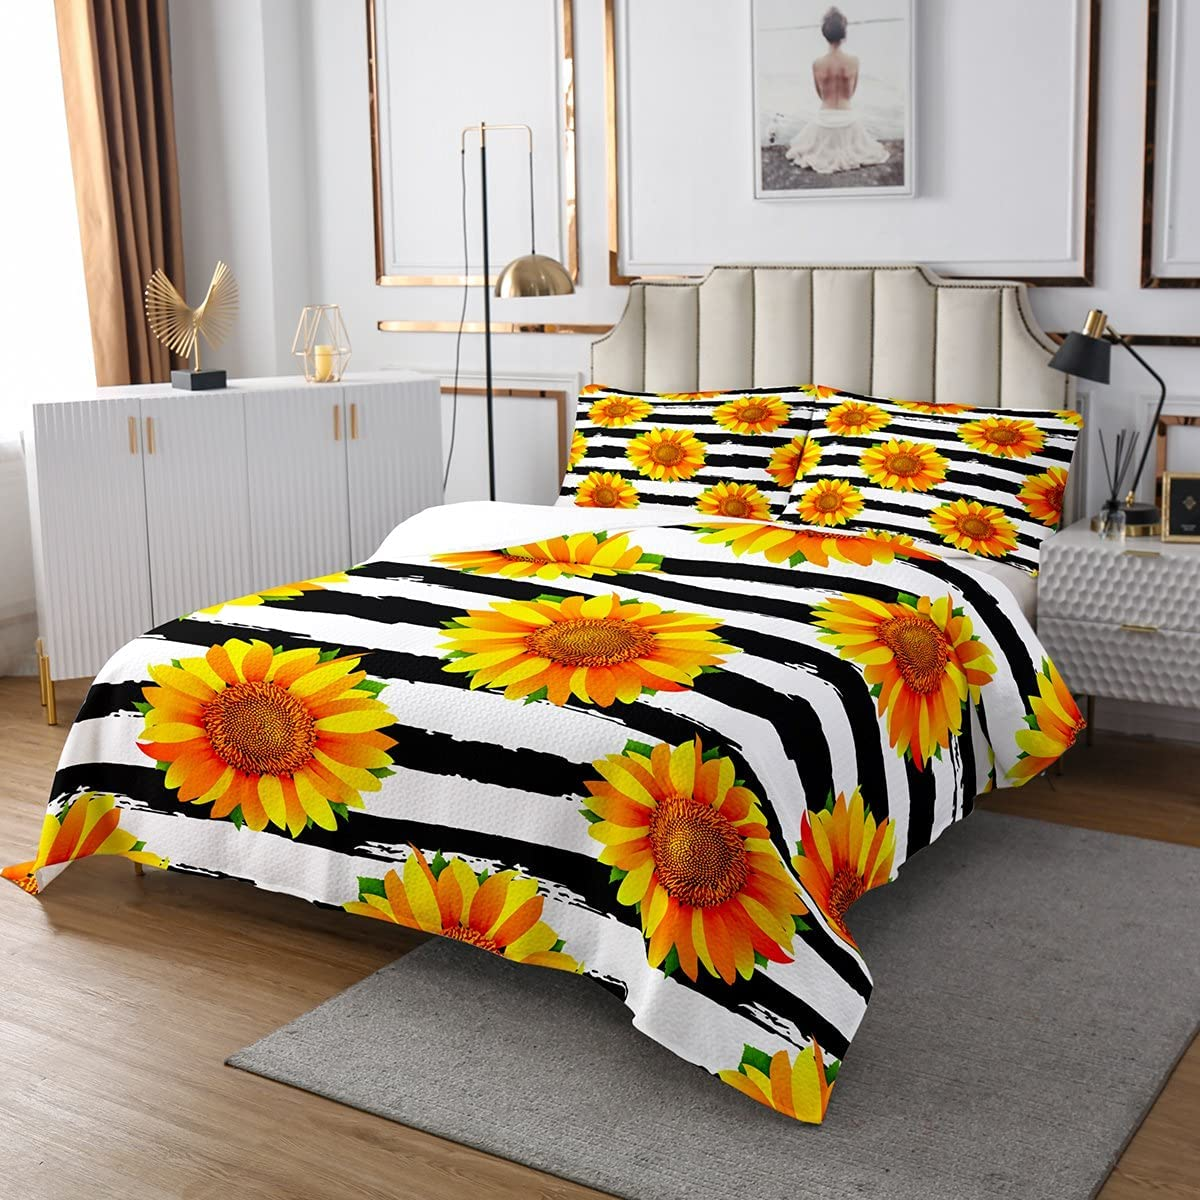 Max 67% OFF Sunflowers Bedspread Floral Quilted Coverlet Boys for security Girls Kids